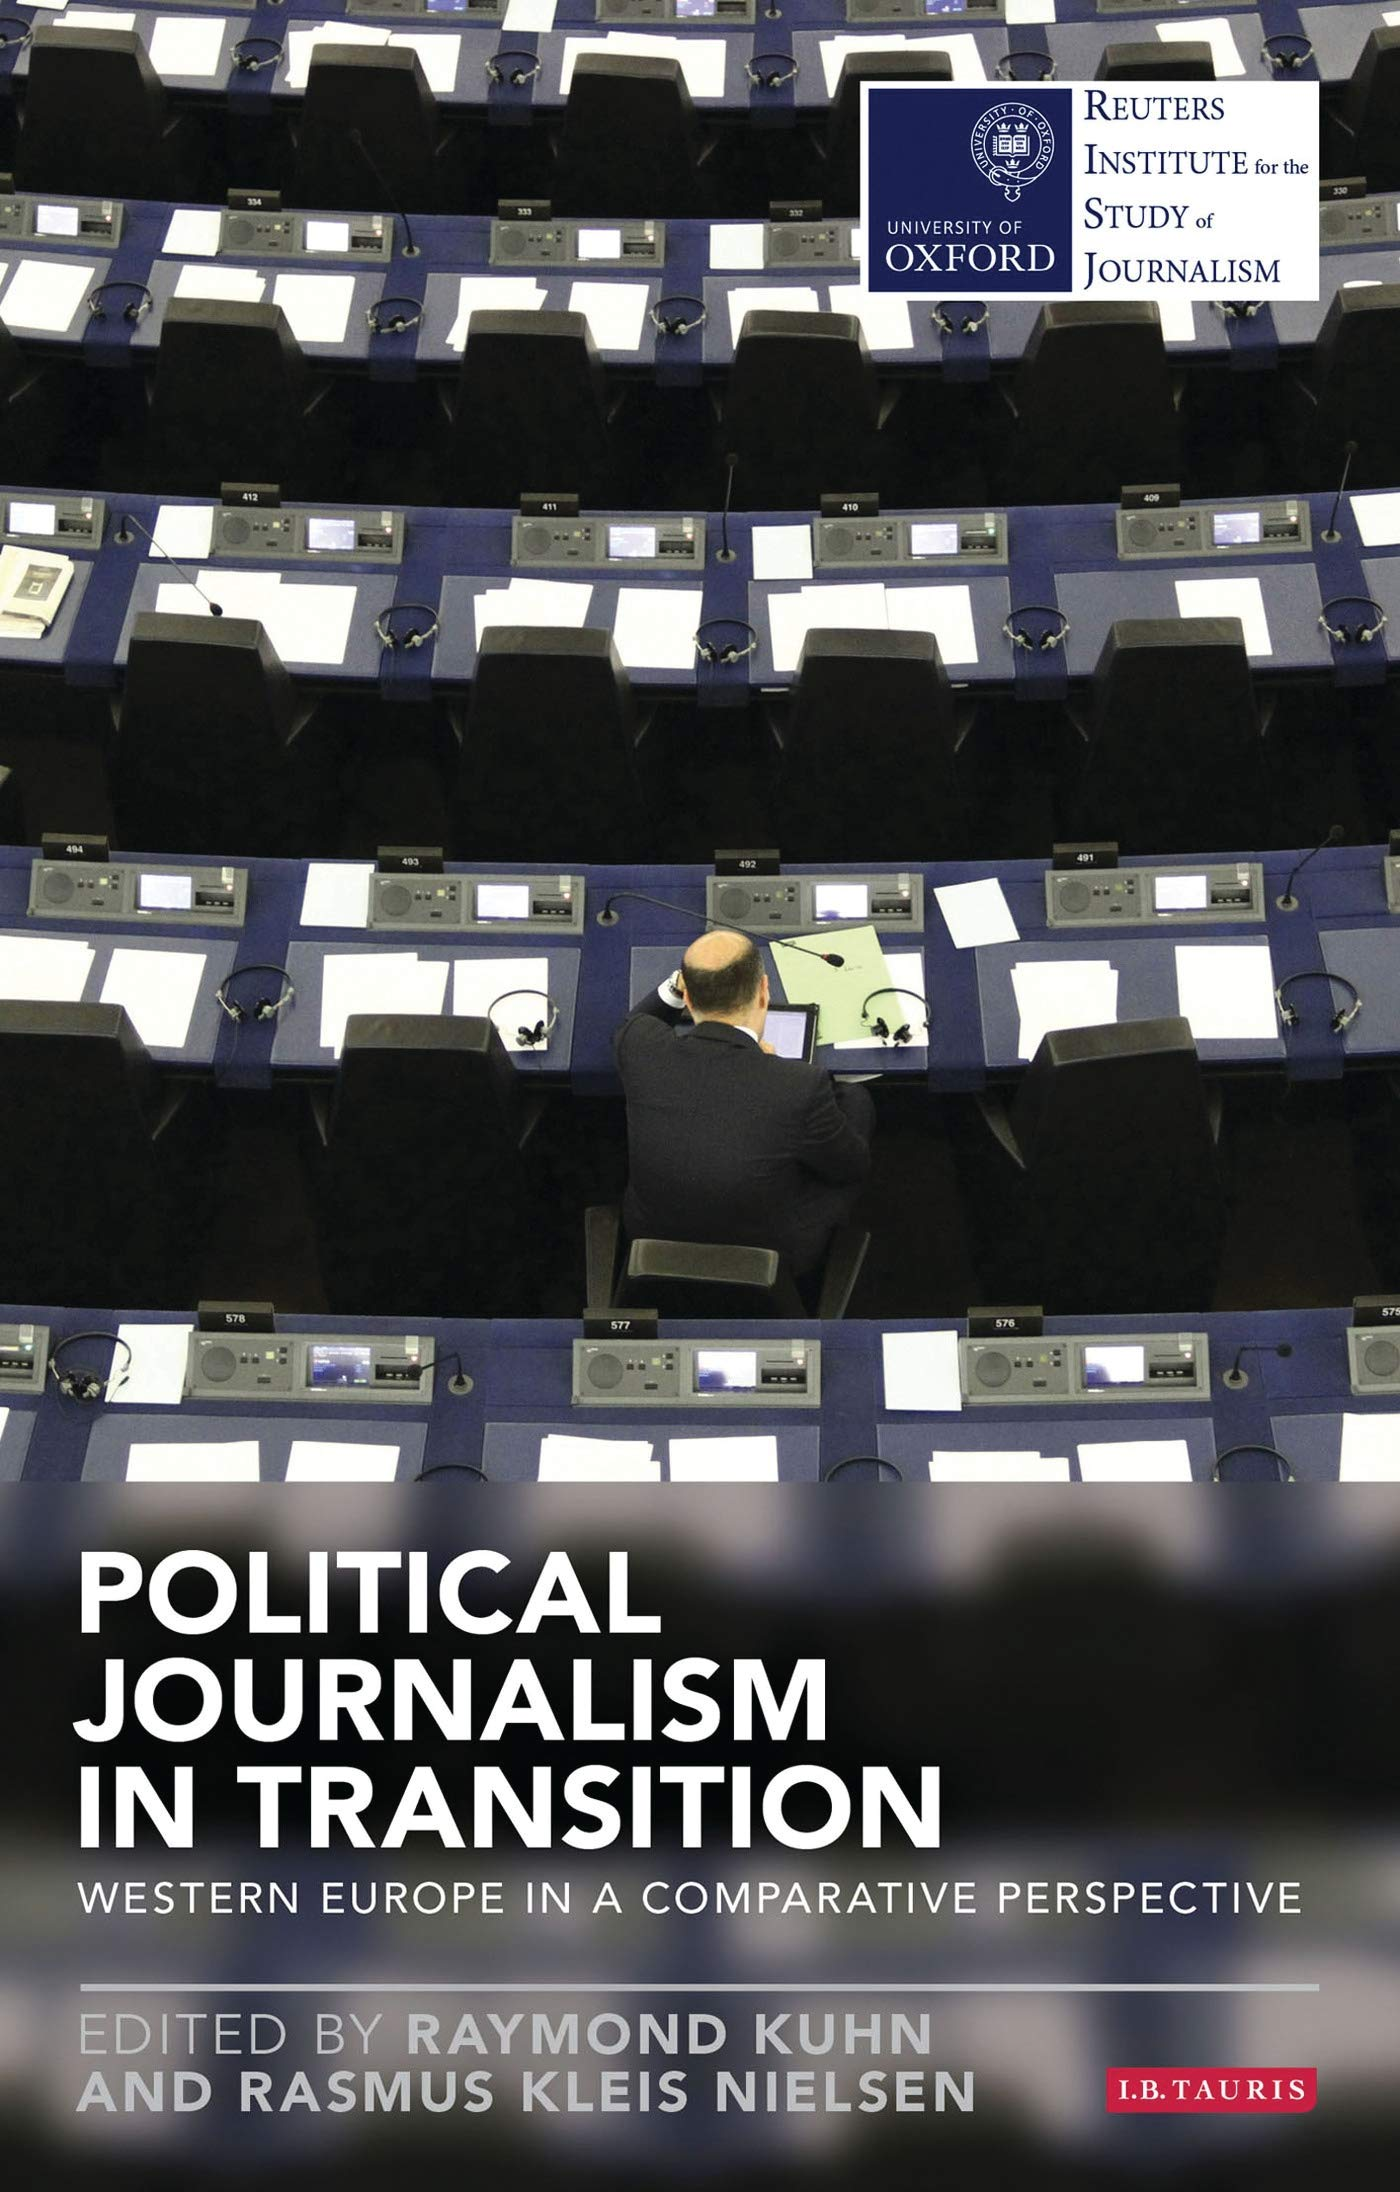 Political Journalism In Transition  Western Europe In A Comparative Perspective  Reuters Institute For The Study Of Journalism